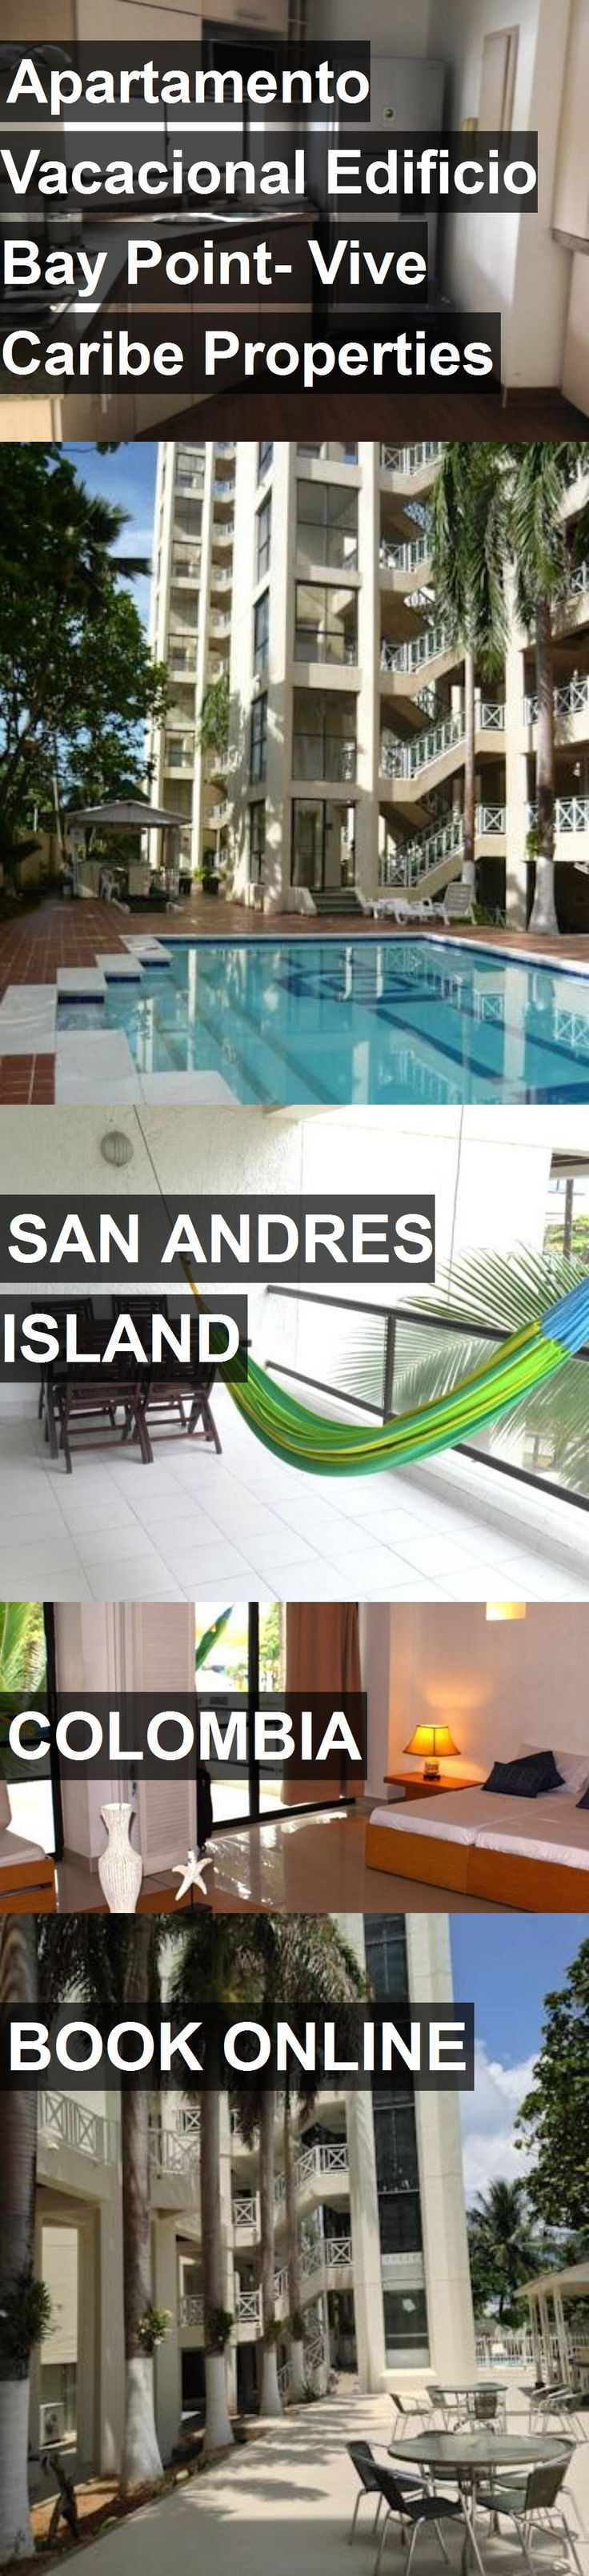 Hotel Apartamento Vacacional Edificio Bay Point- Vive Caribe Properties in San Andres Island, Colombia. For more information, photos, reviews and best prices please follow the link. #Colombia #SanAndresIsland #travel #vacation #hotel